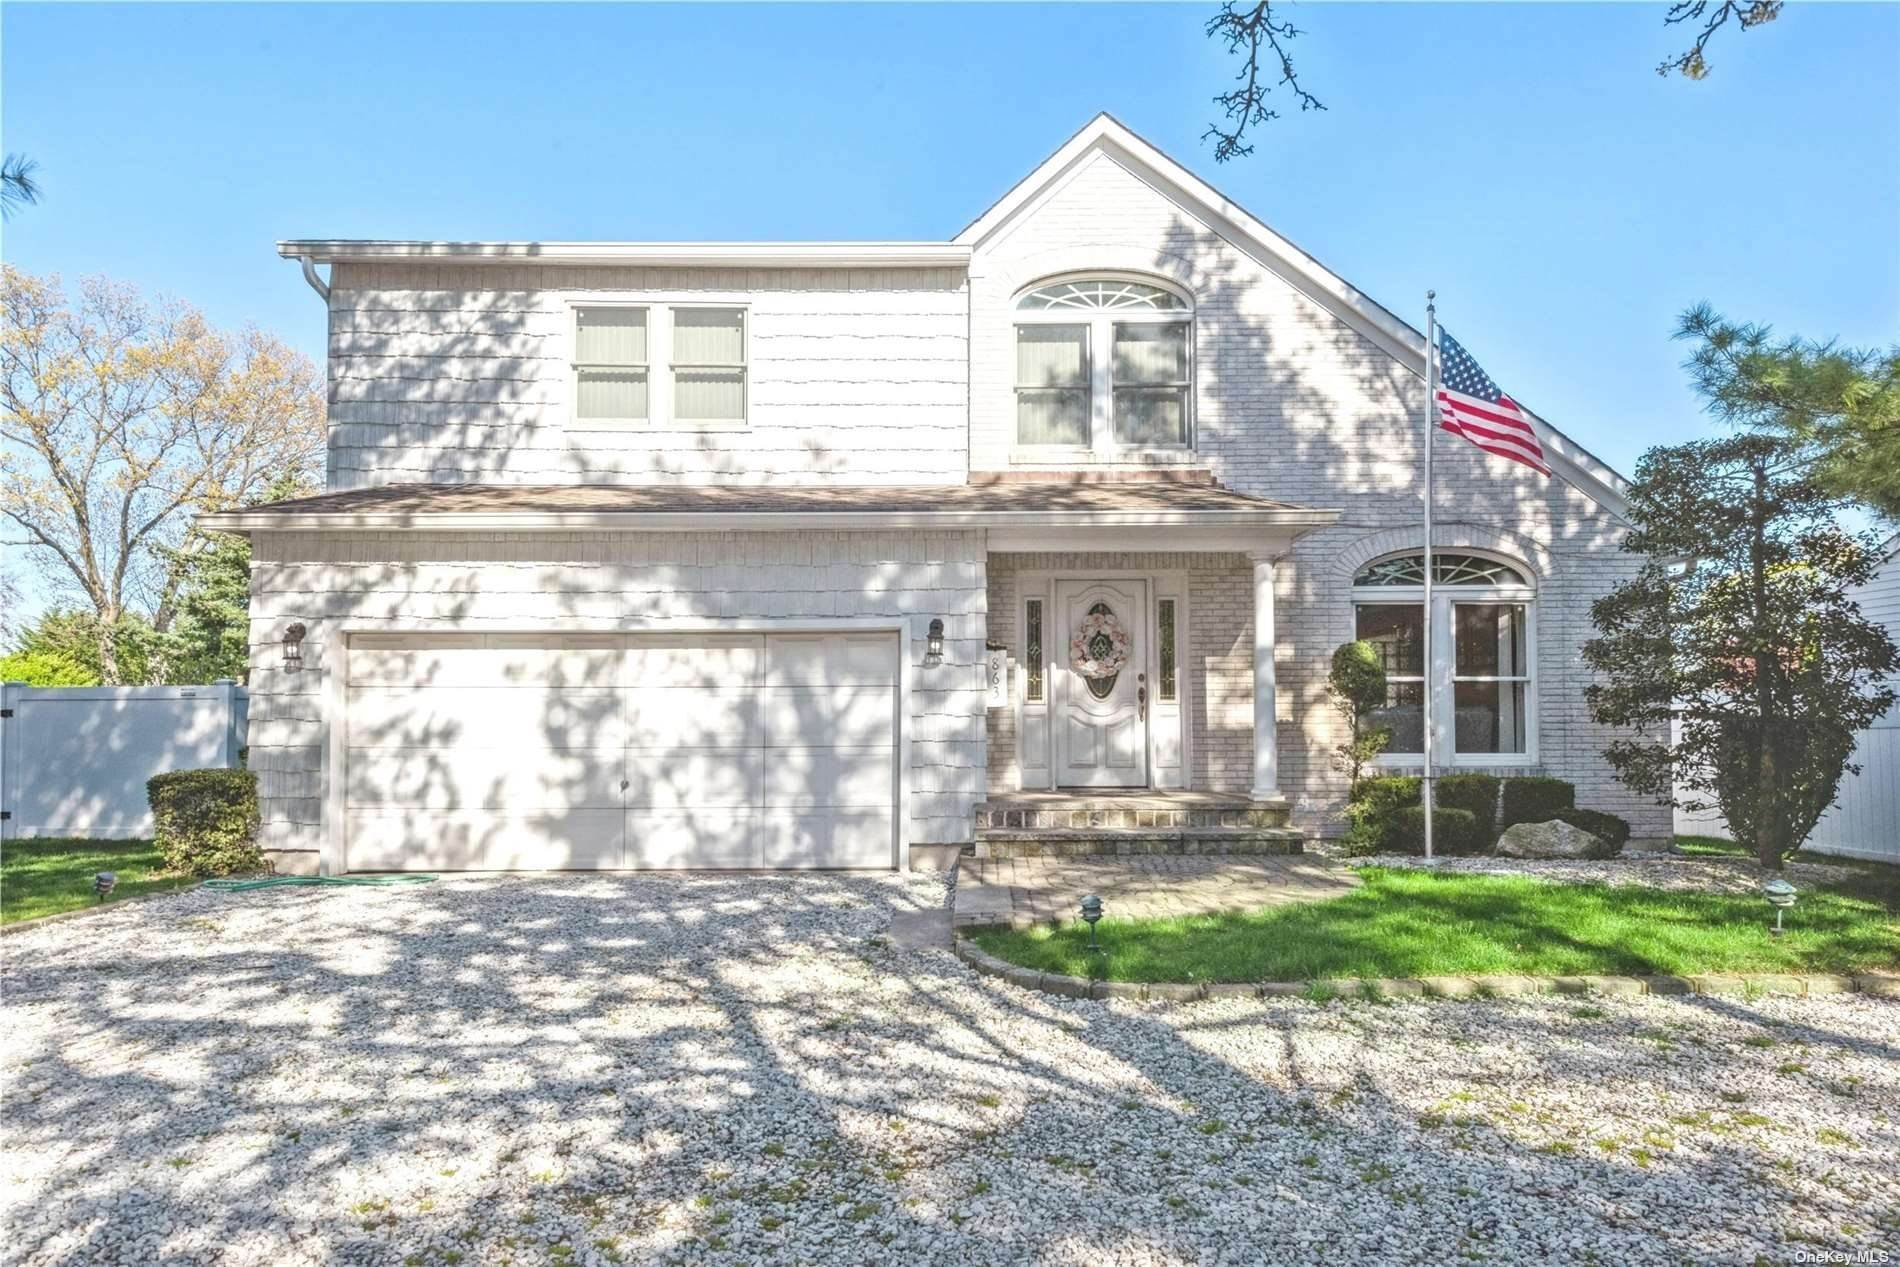 Residential for Sale at 863 Linstead Lane North Bellmore, New York 11710 United States